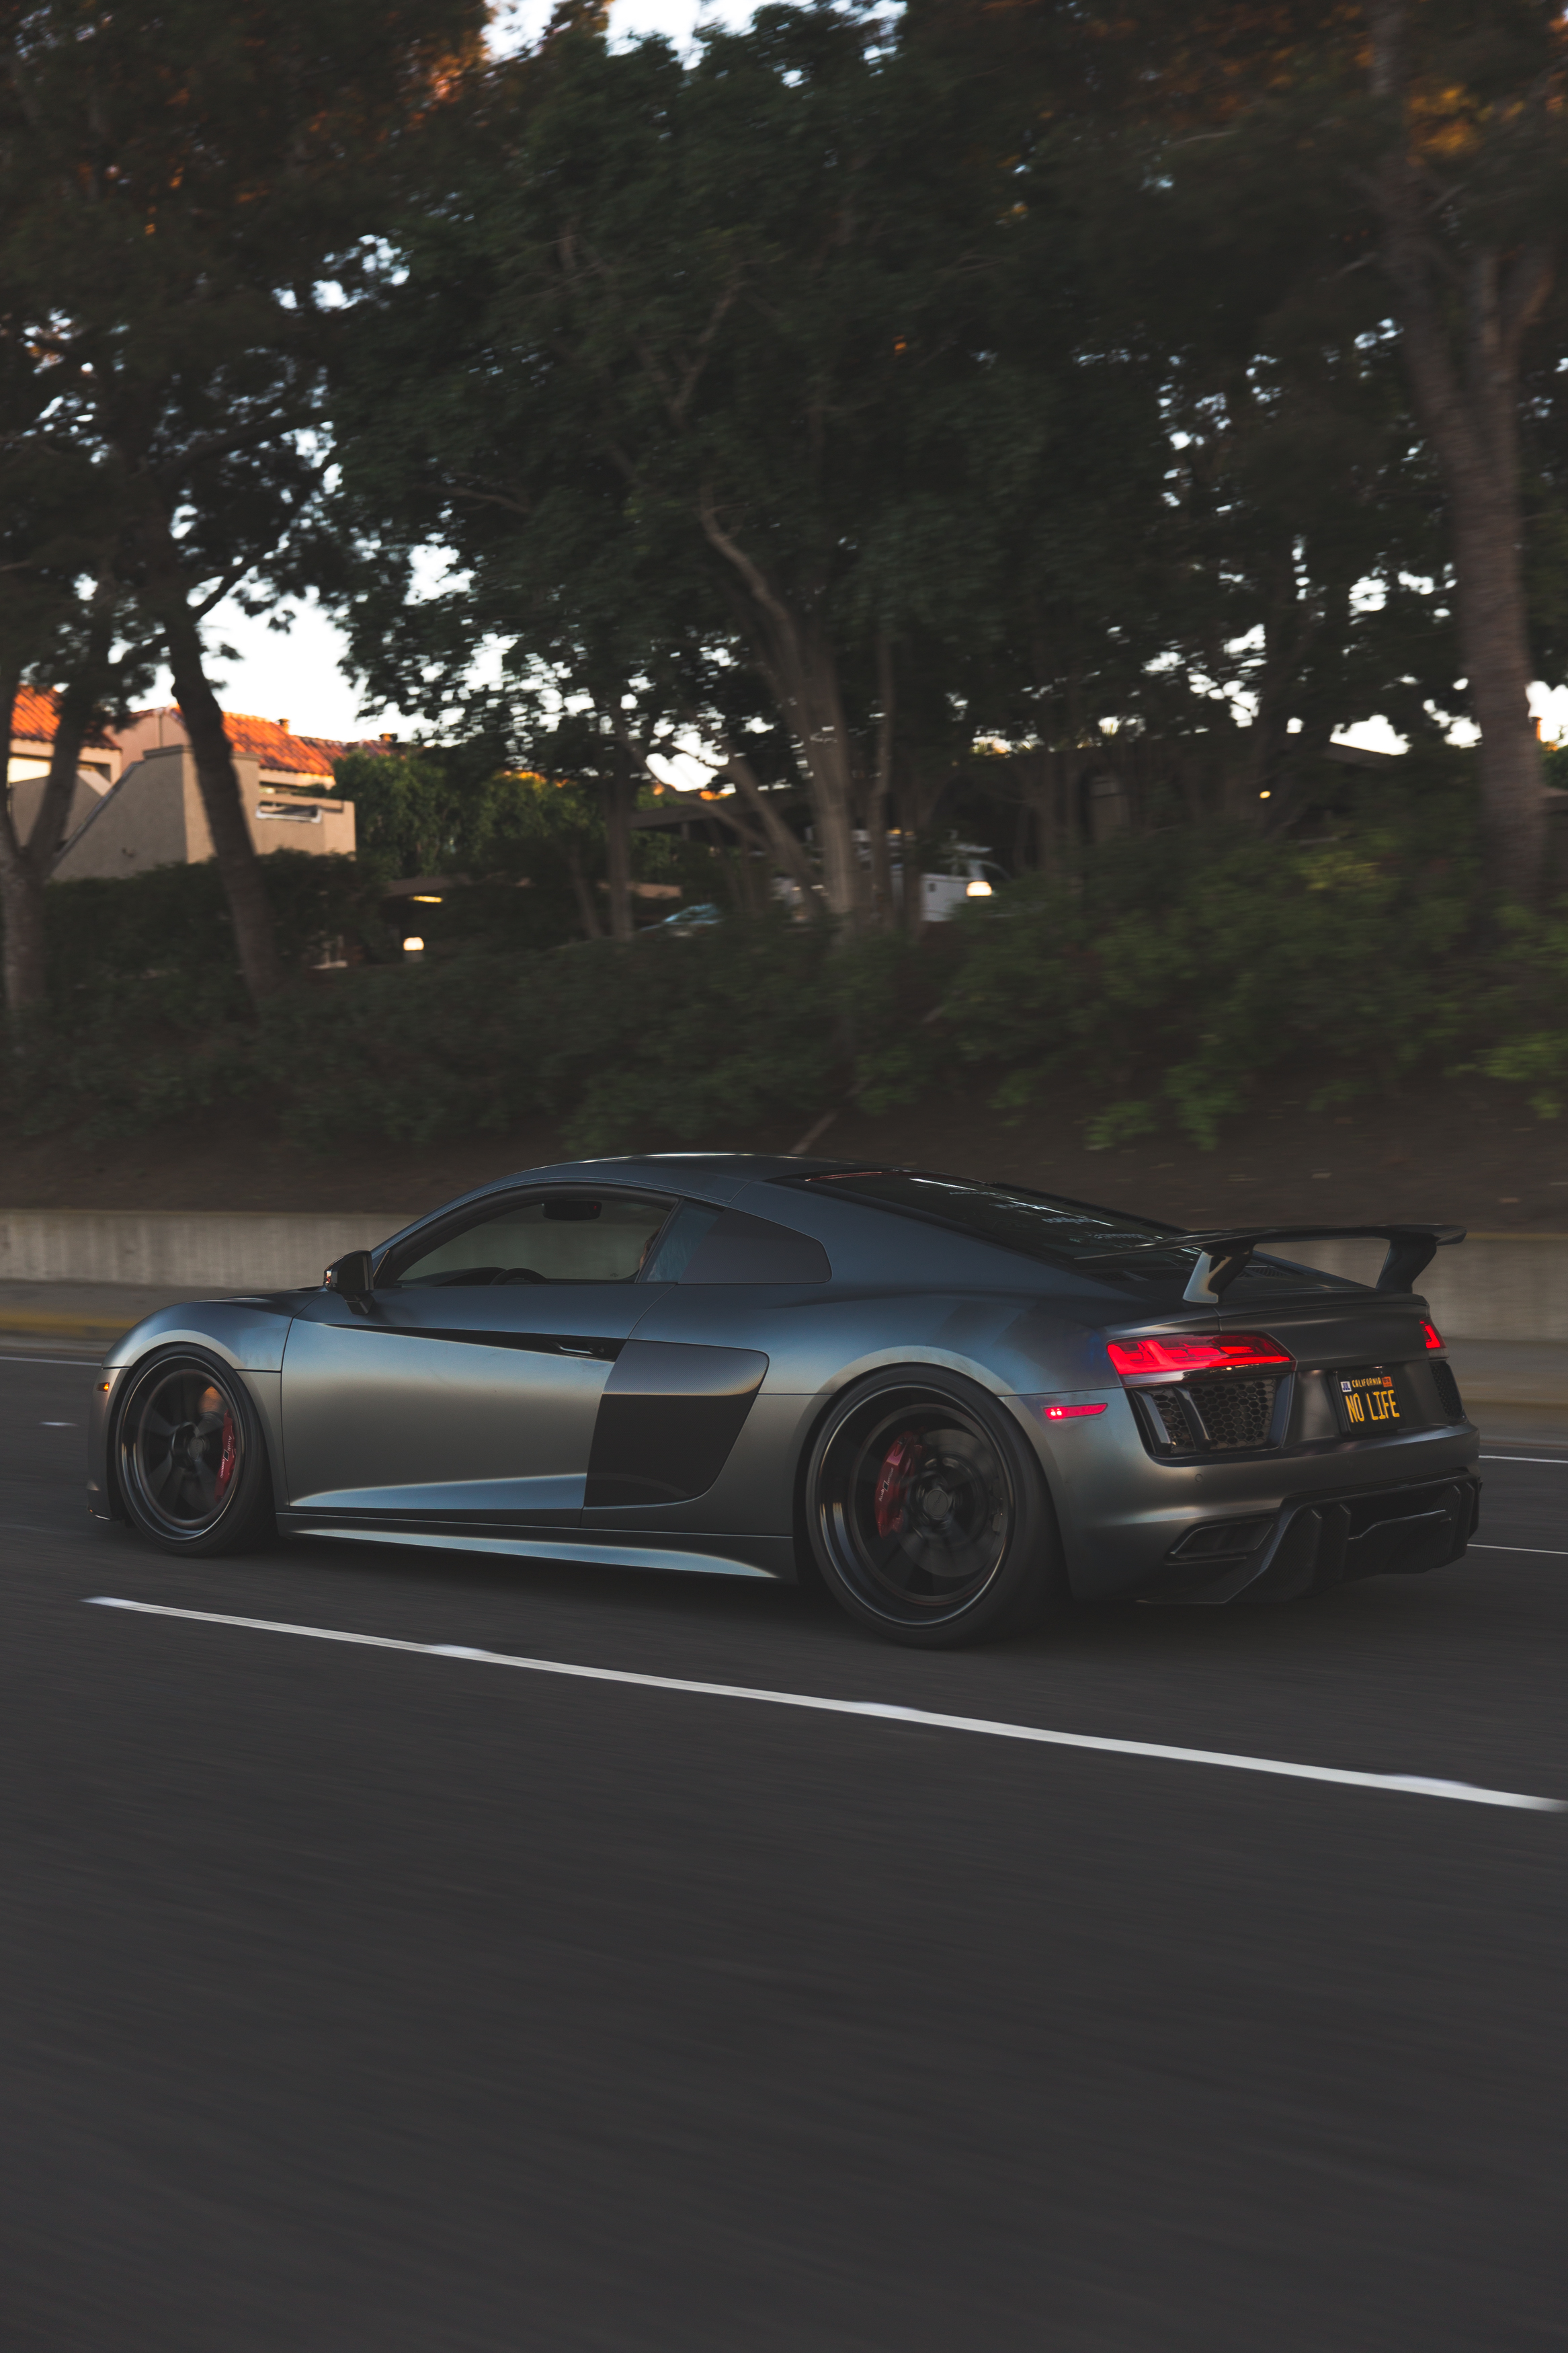 Stay_Driven_Page_R8_Newport-6.jpg